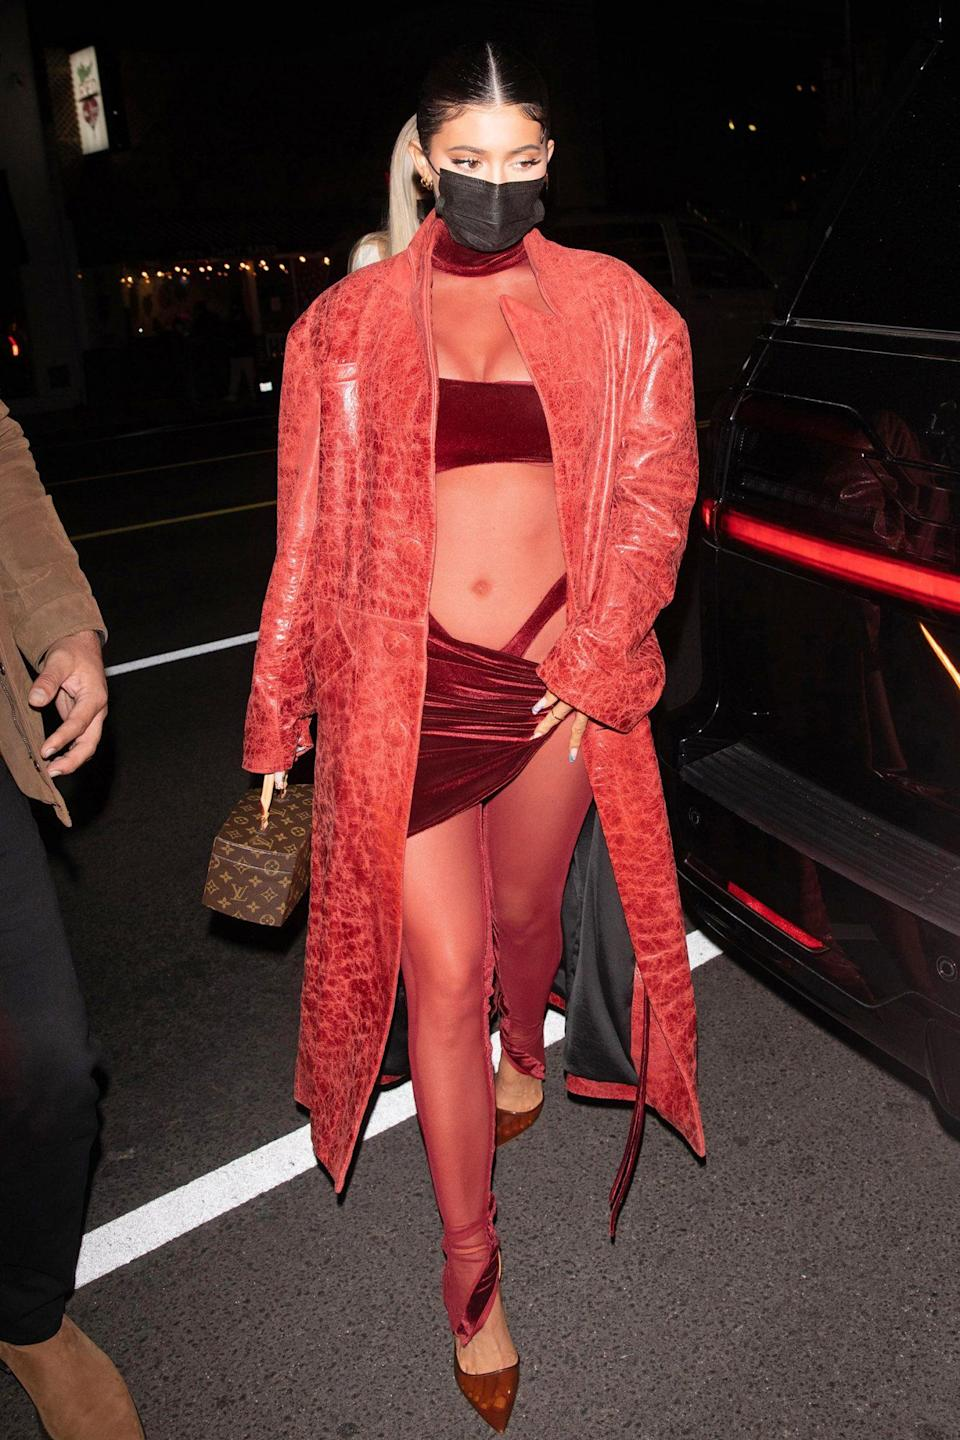 <p>Kylie Jenner arrives at Justin Bieber's album release party in an eye-catching jumpsuit featuring sheer panels and cut-outs on Thursday at The Nice Guy in L.A.</p>